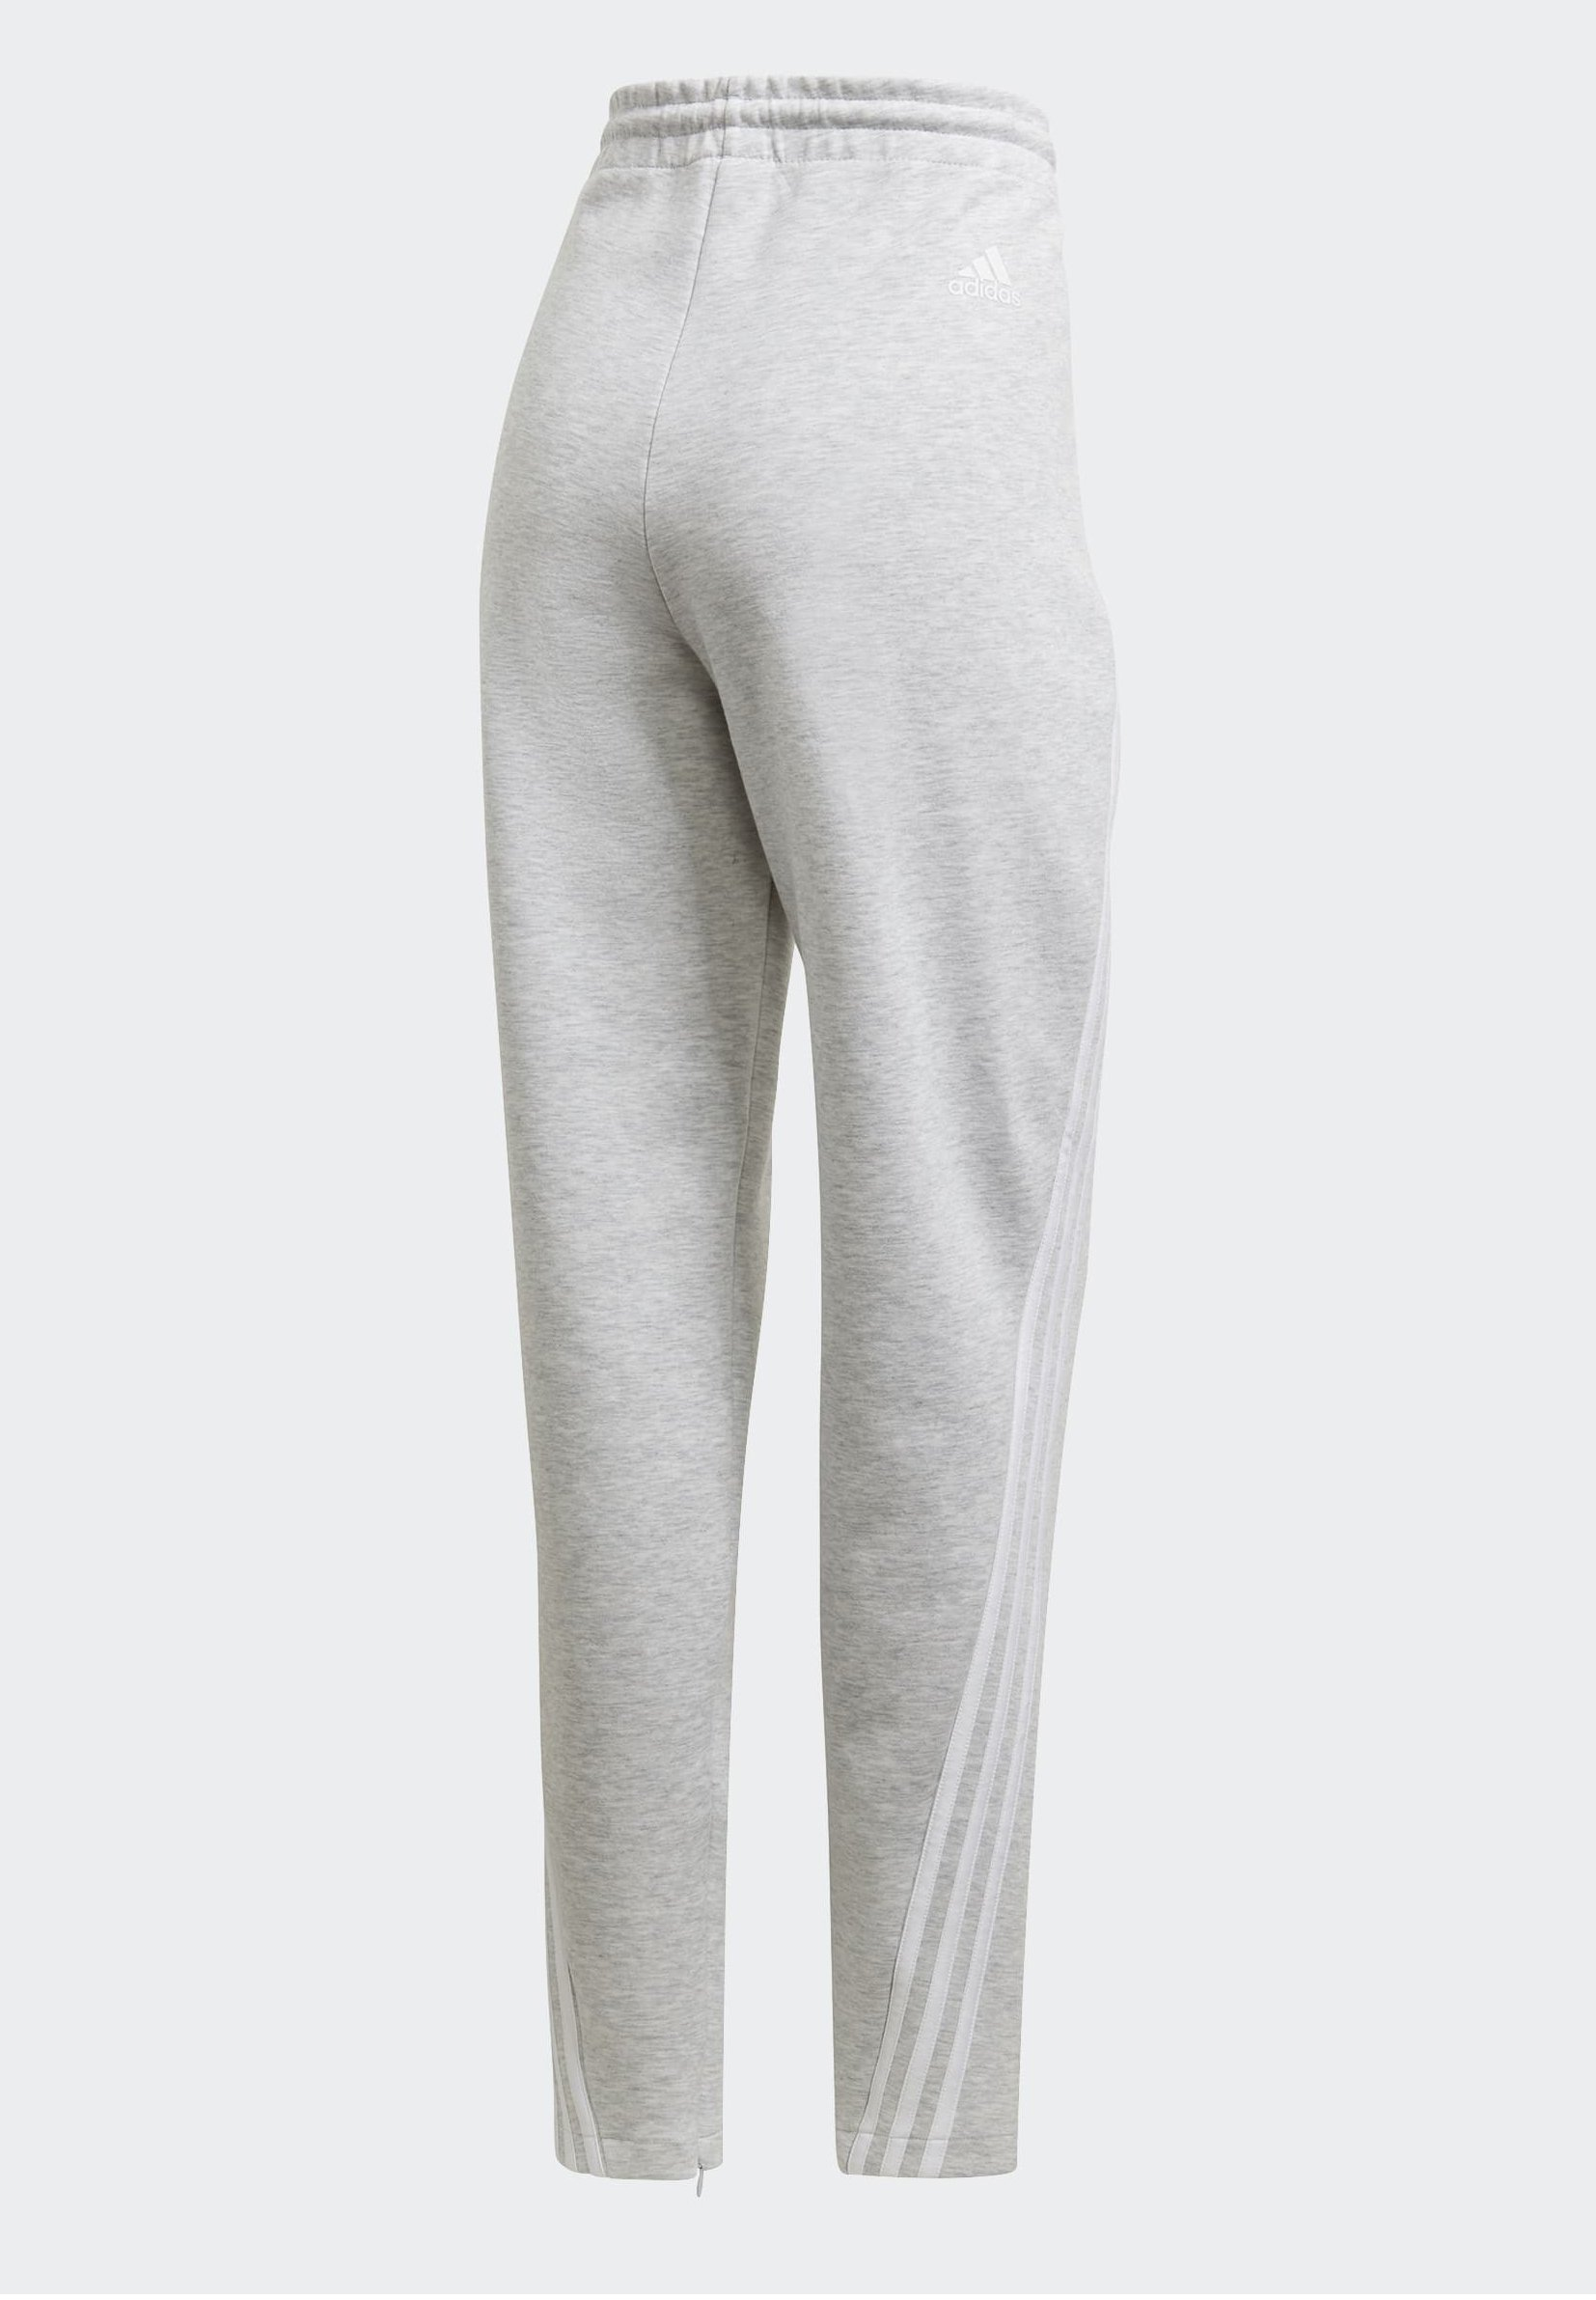 adidas Performance 3-Stripes Doubleknit Zipper - Tracksuit bottoms - Grey U5vjA